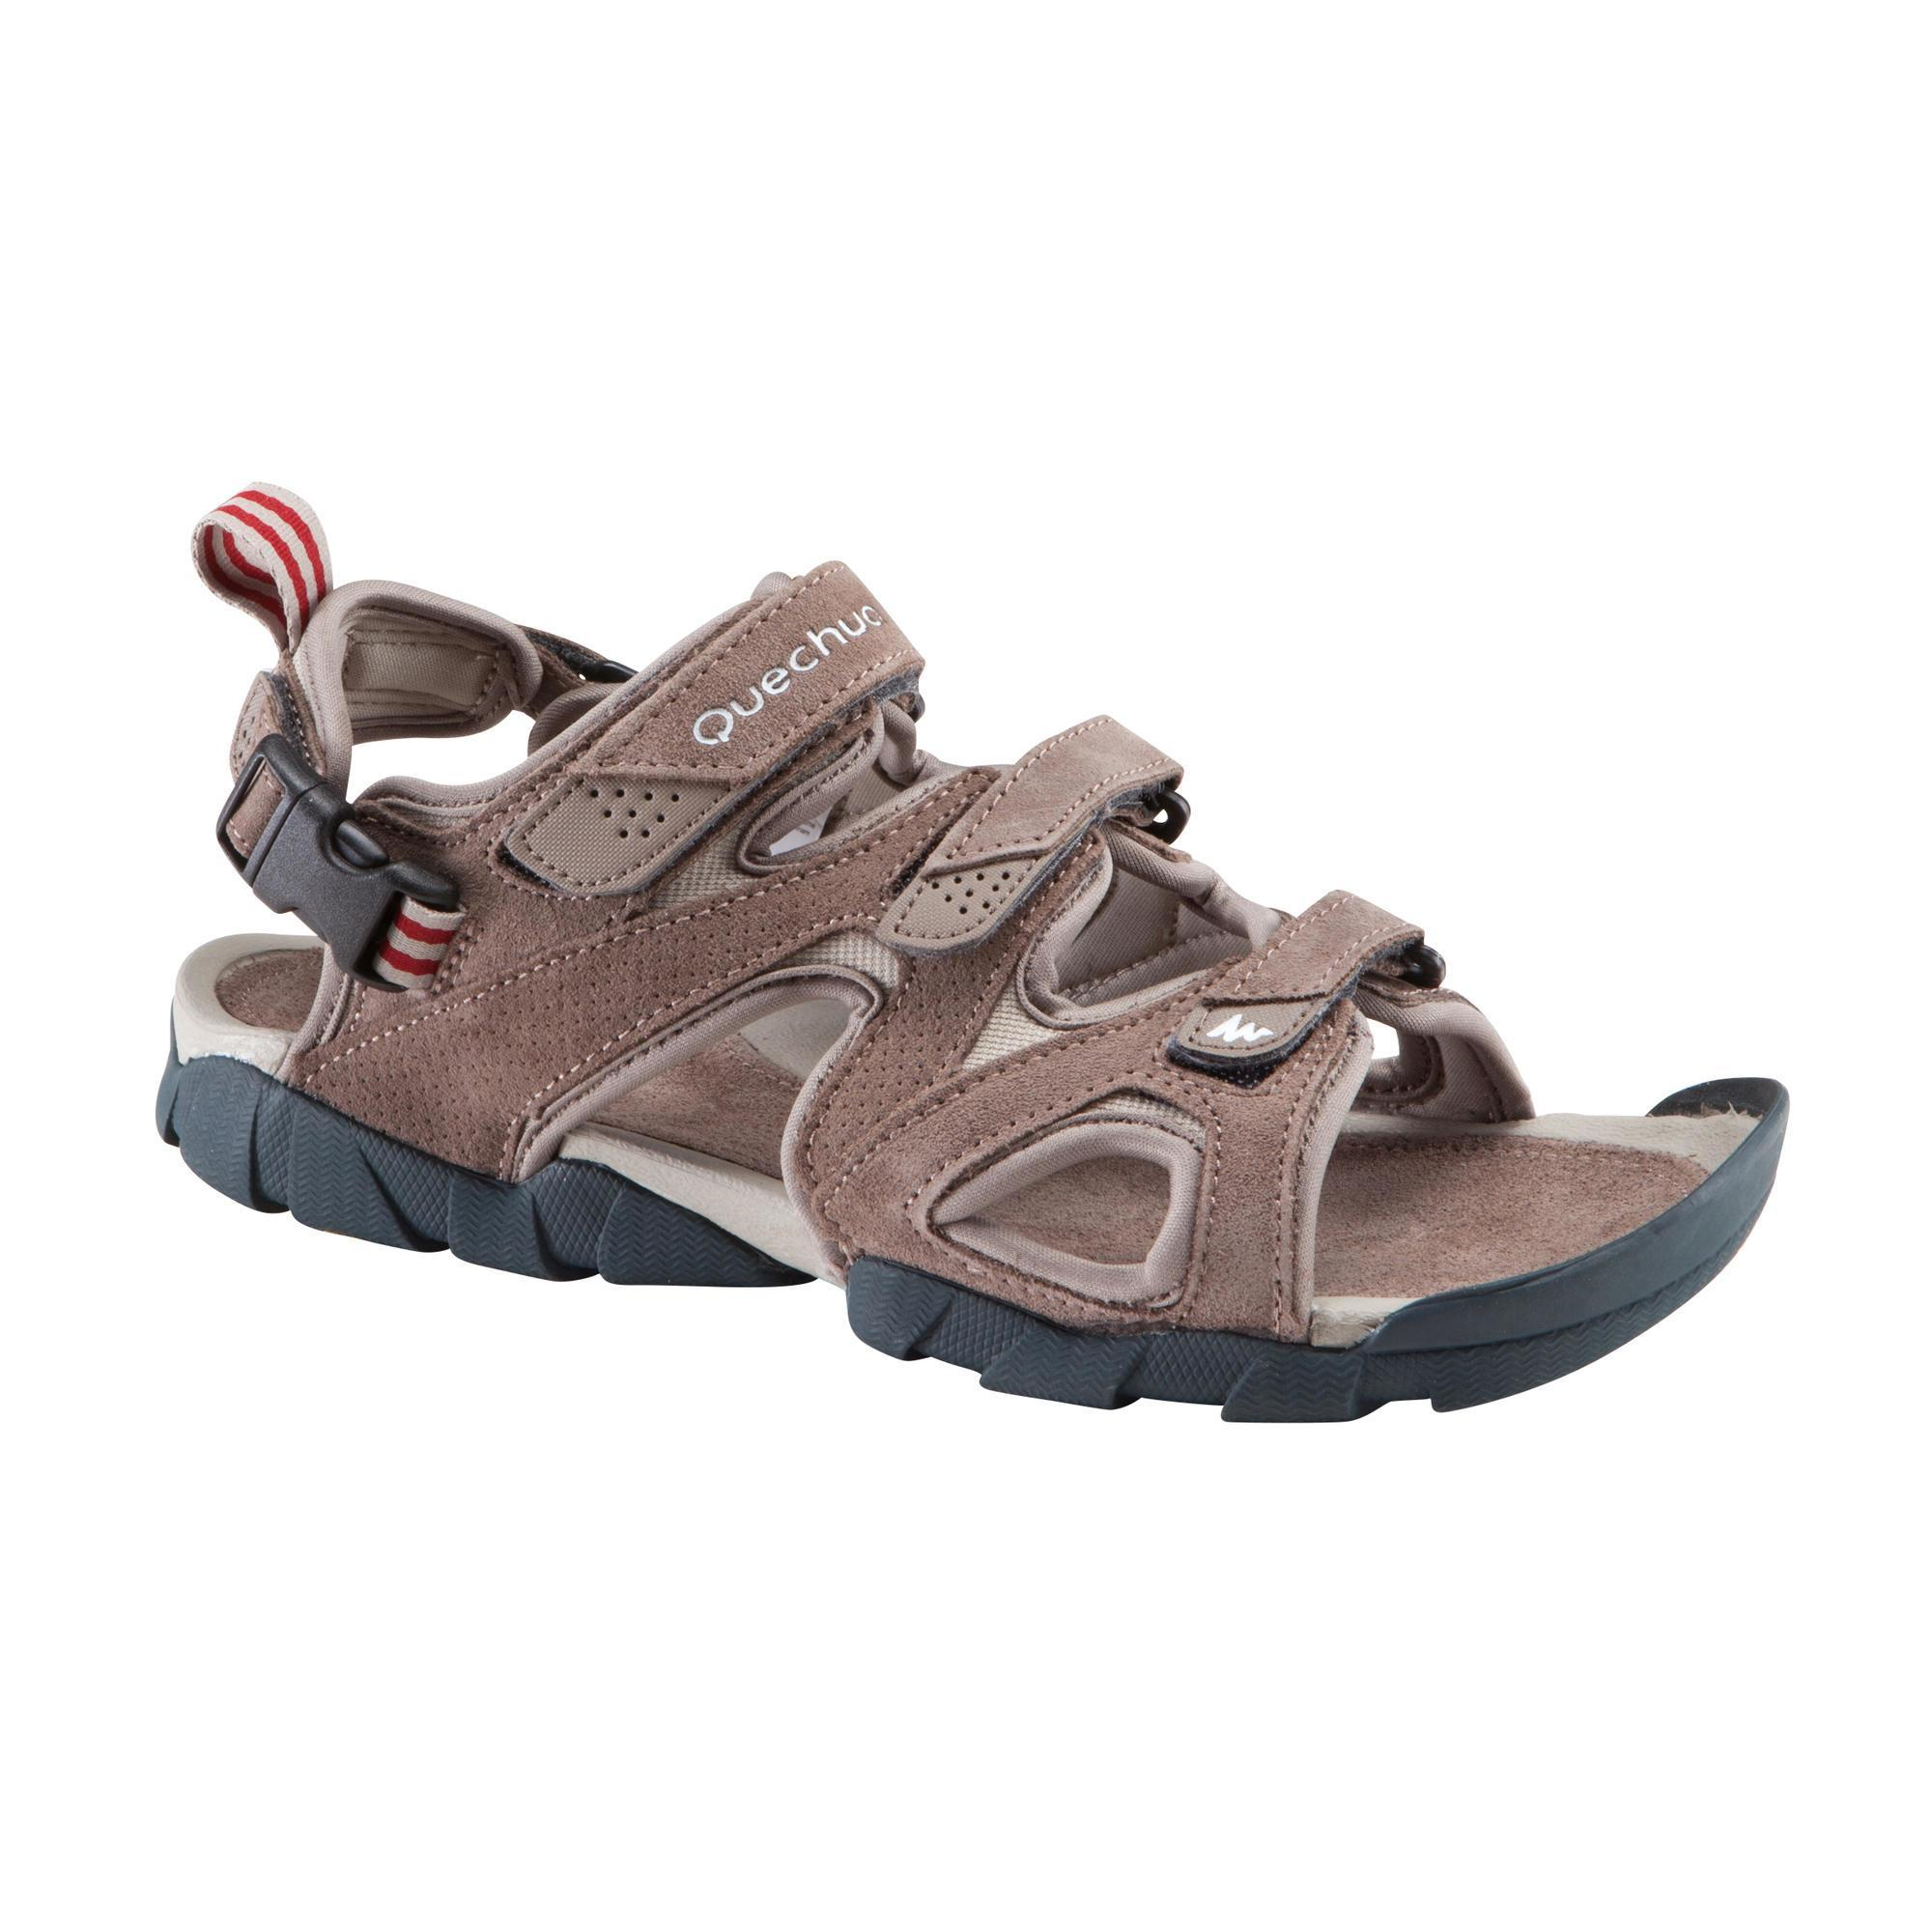 Sandals or shoes for hiking - Sandals Or Shoes For Hiking 53